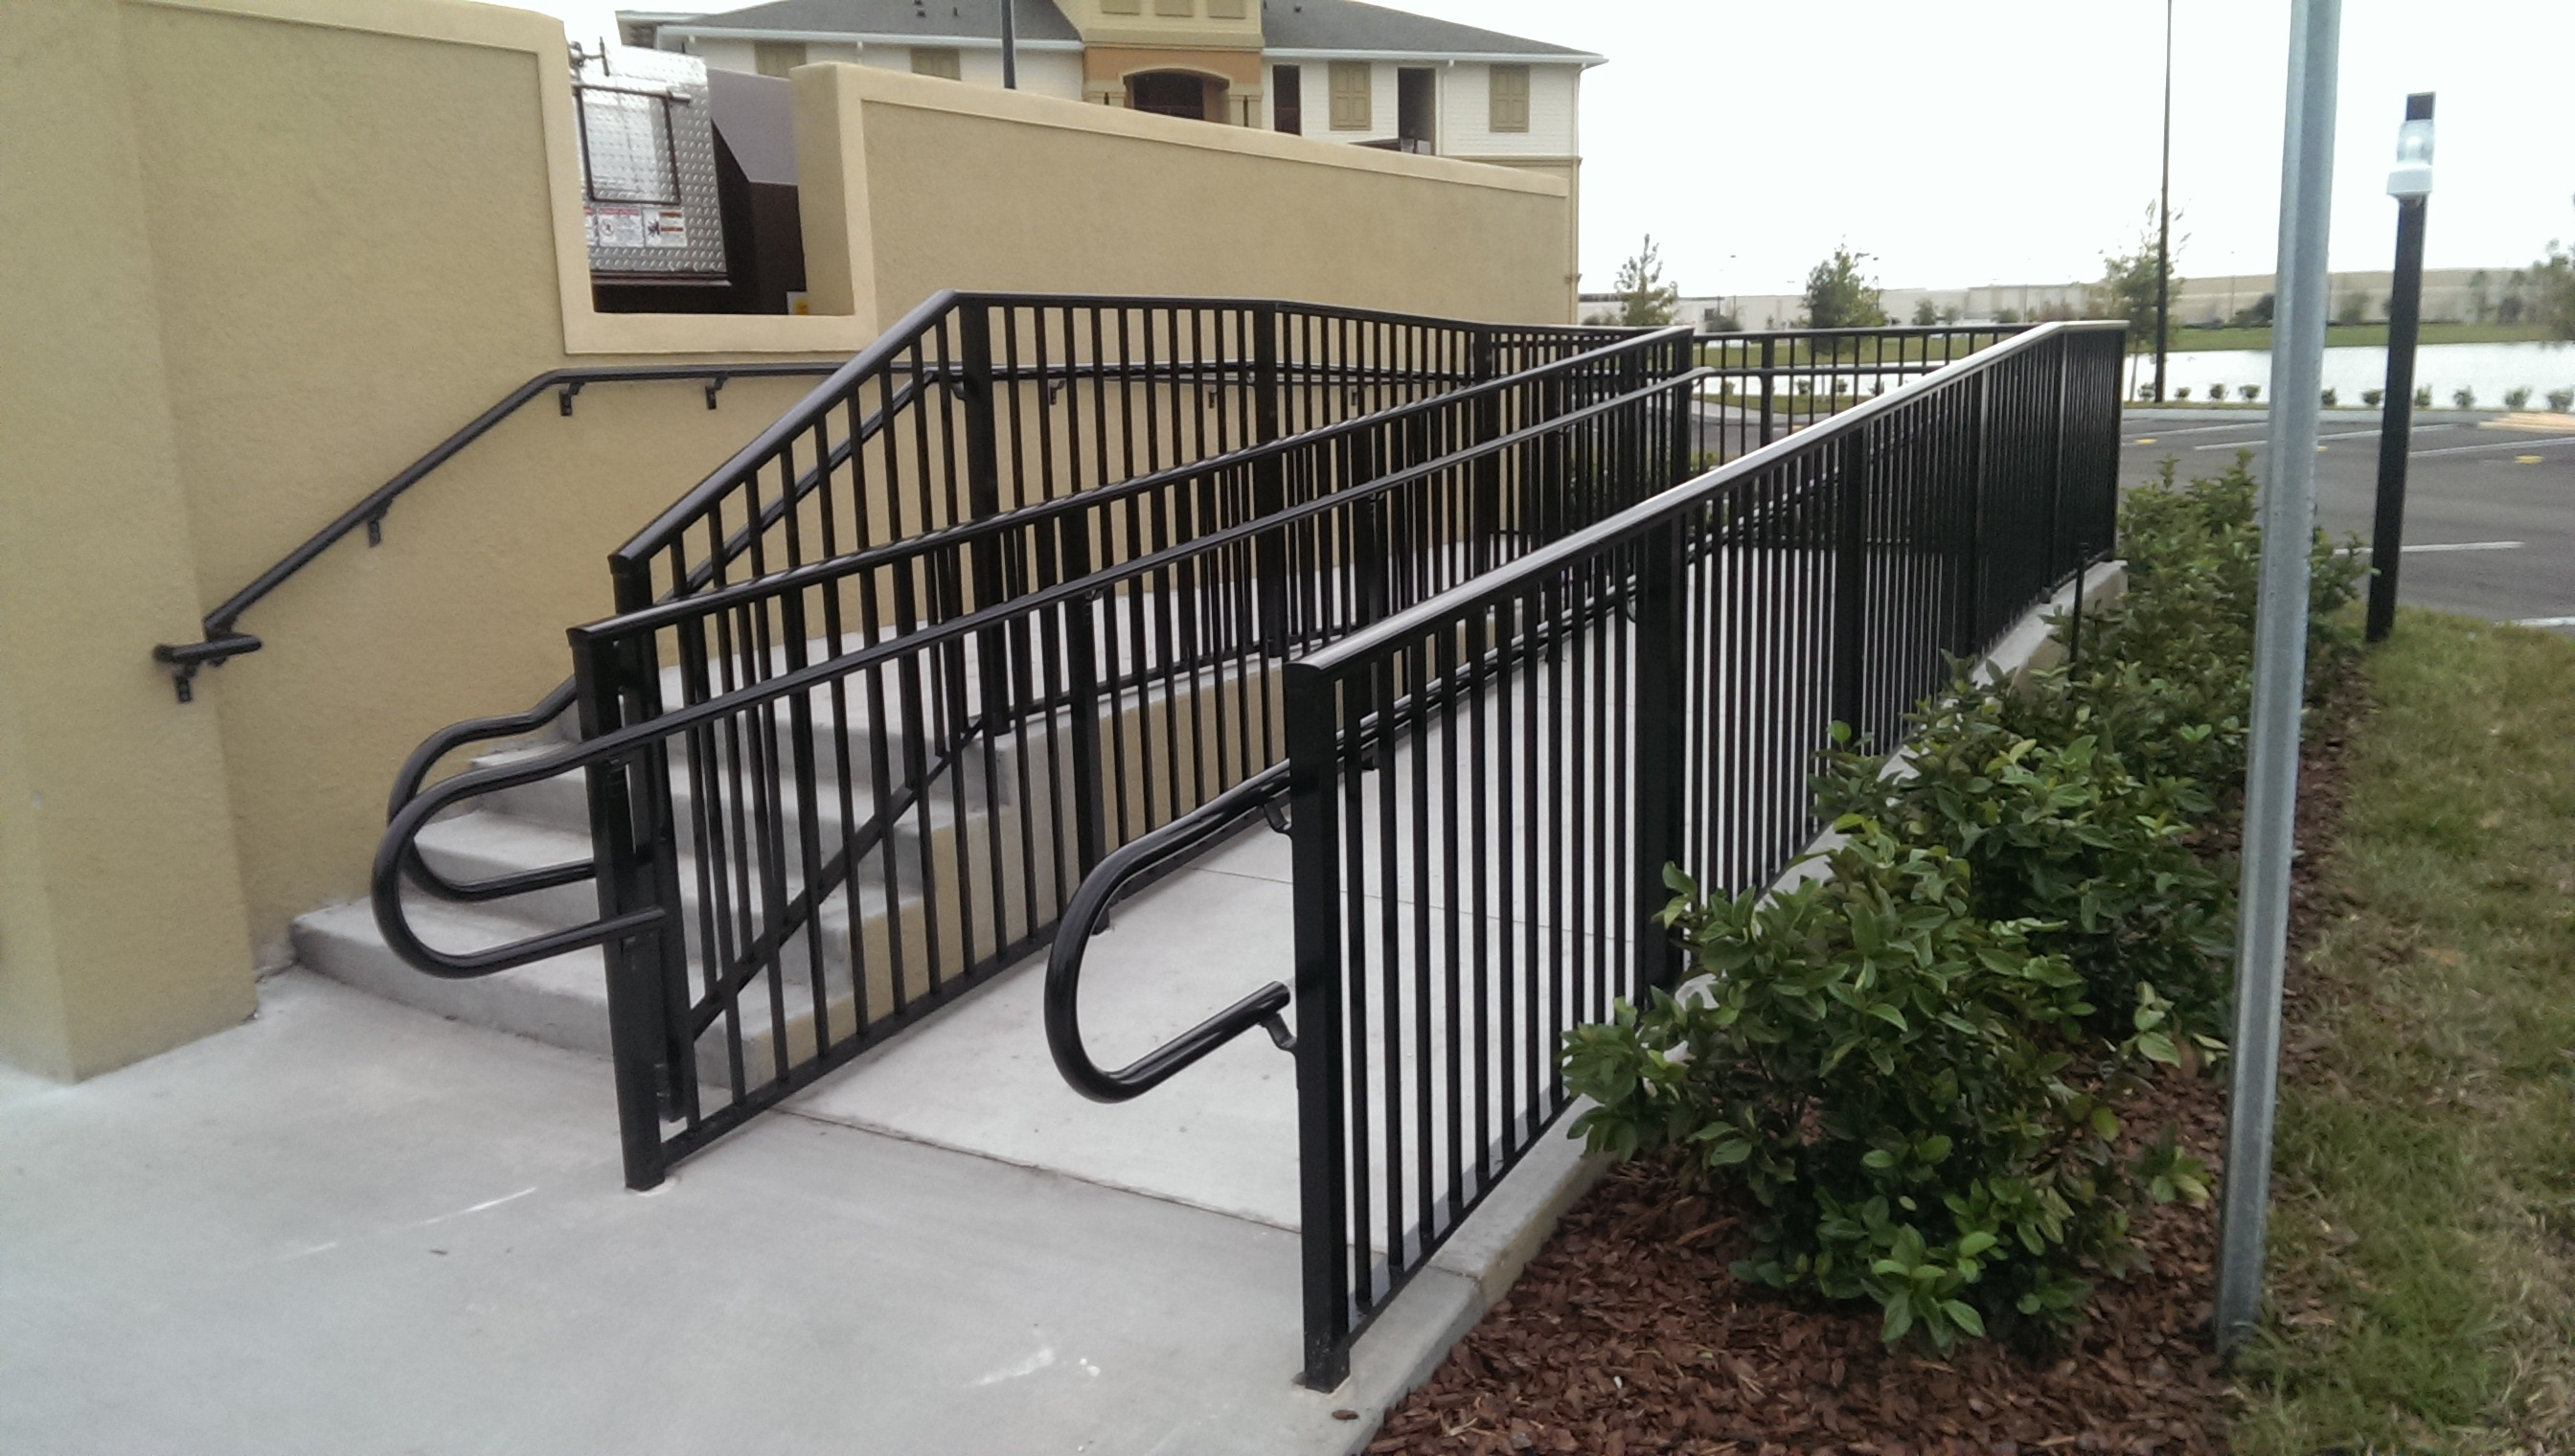 Handrails U2013 Florida Building Code 5th Edition (2014)   Barfield Fence And  Fabrication